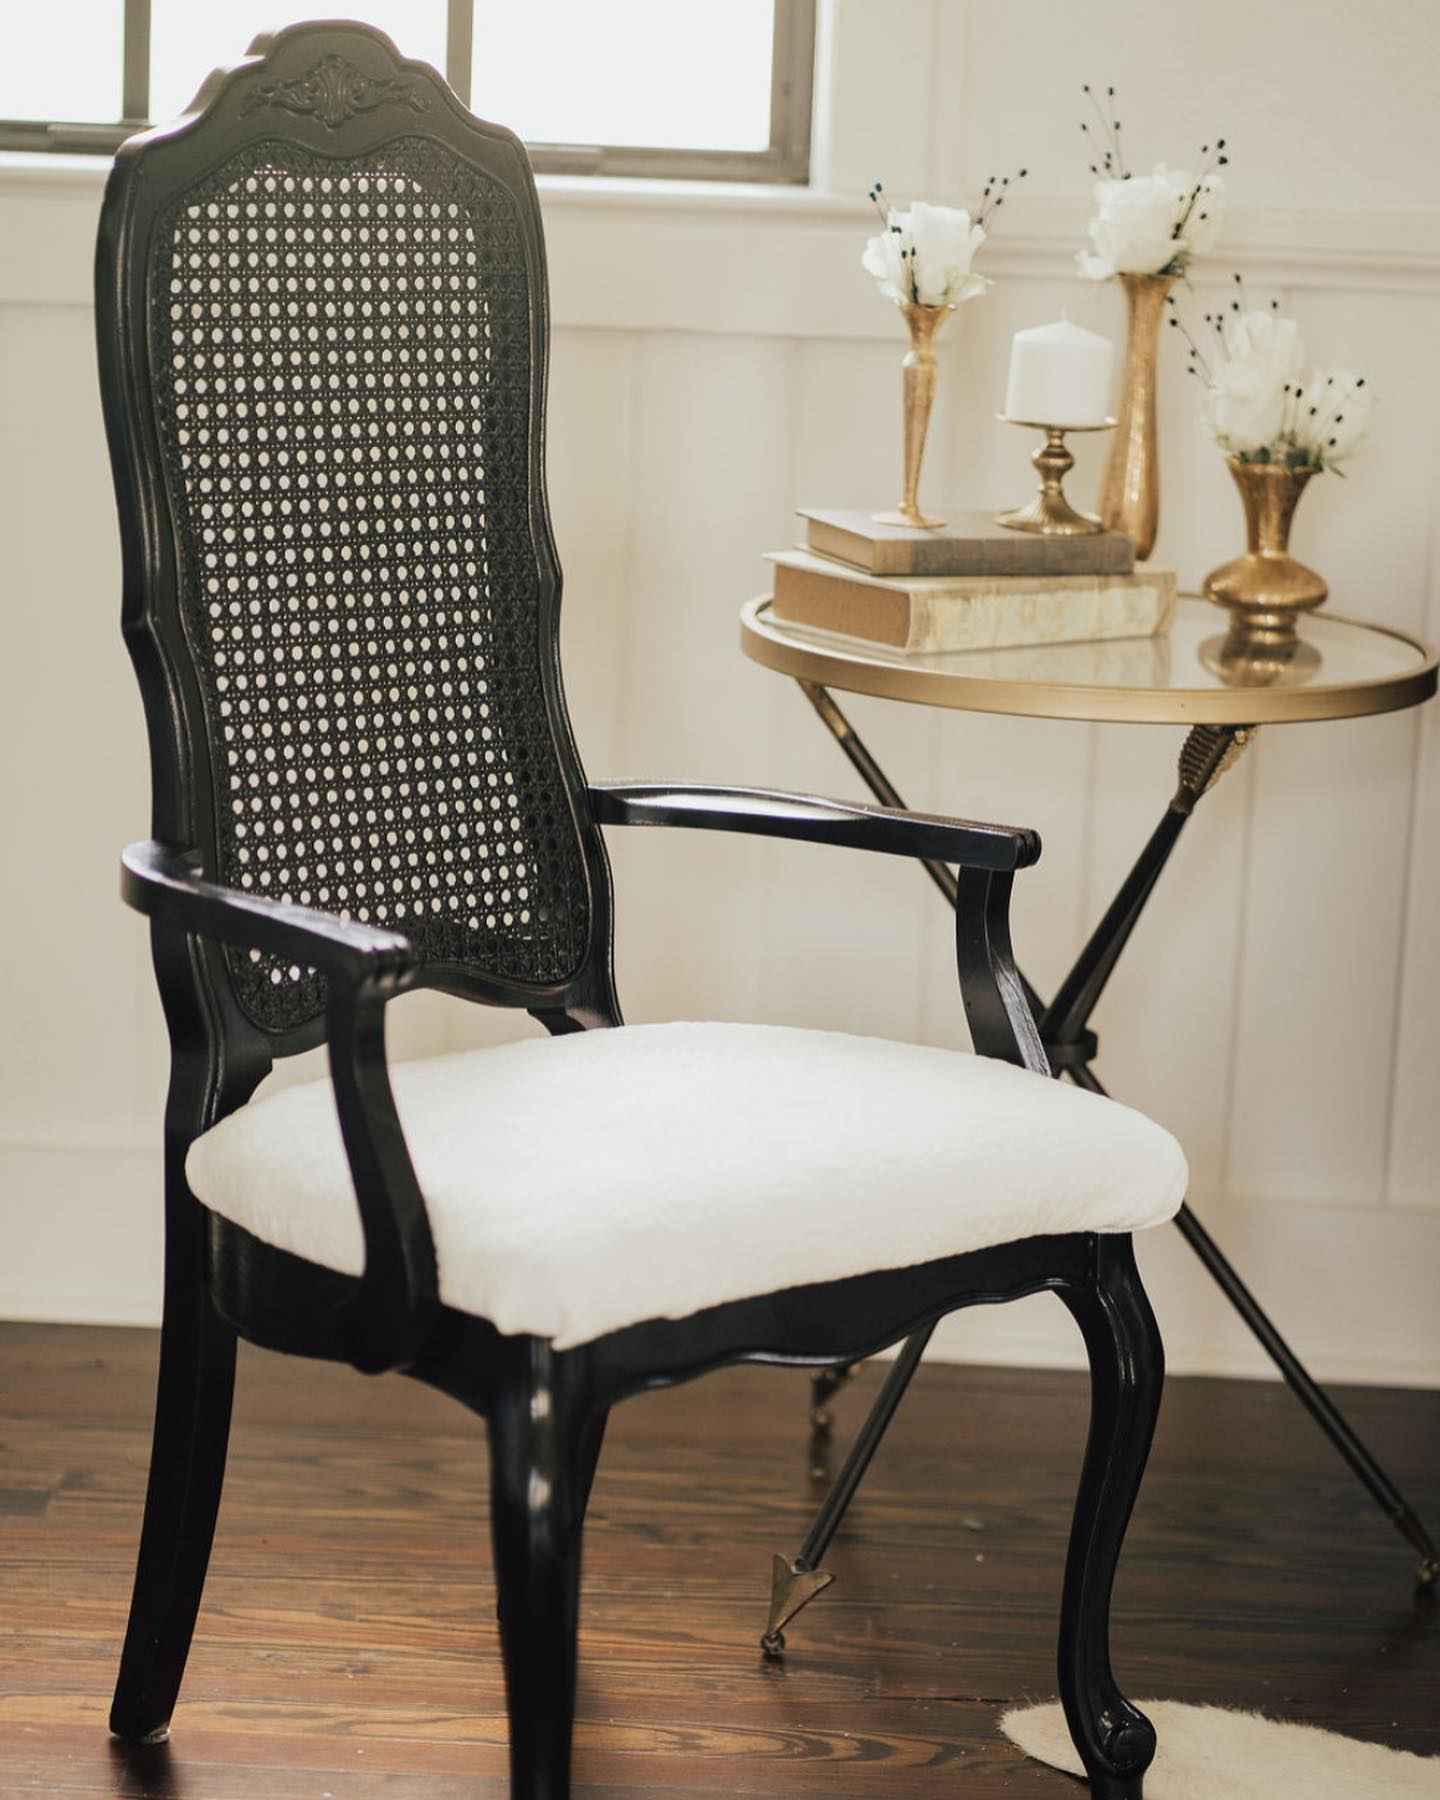 Black & White Vintage Chairs